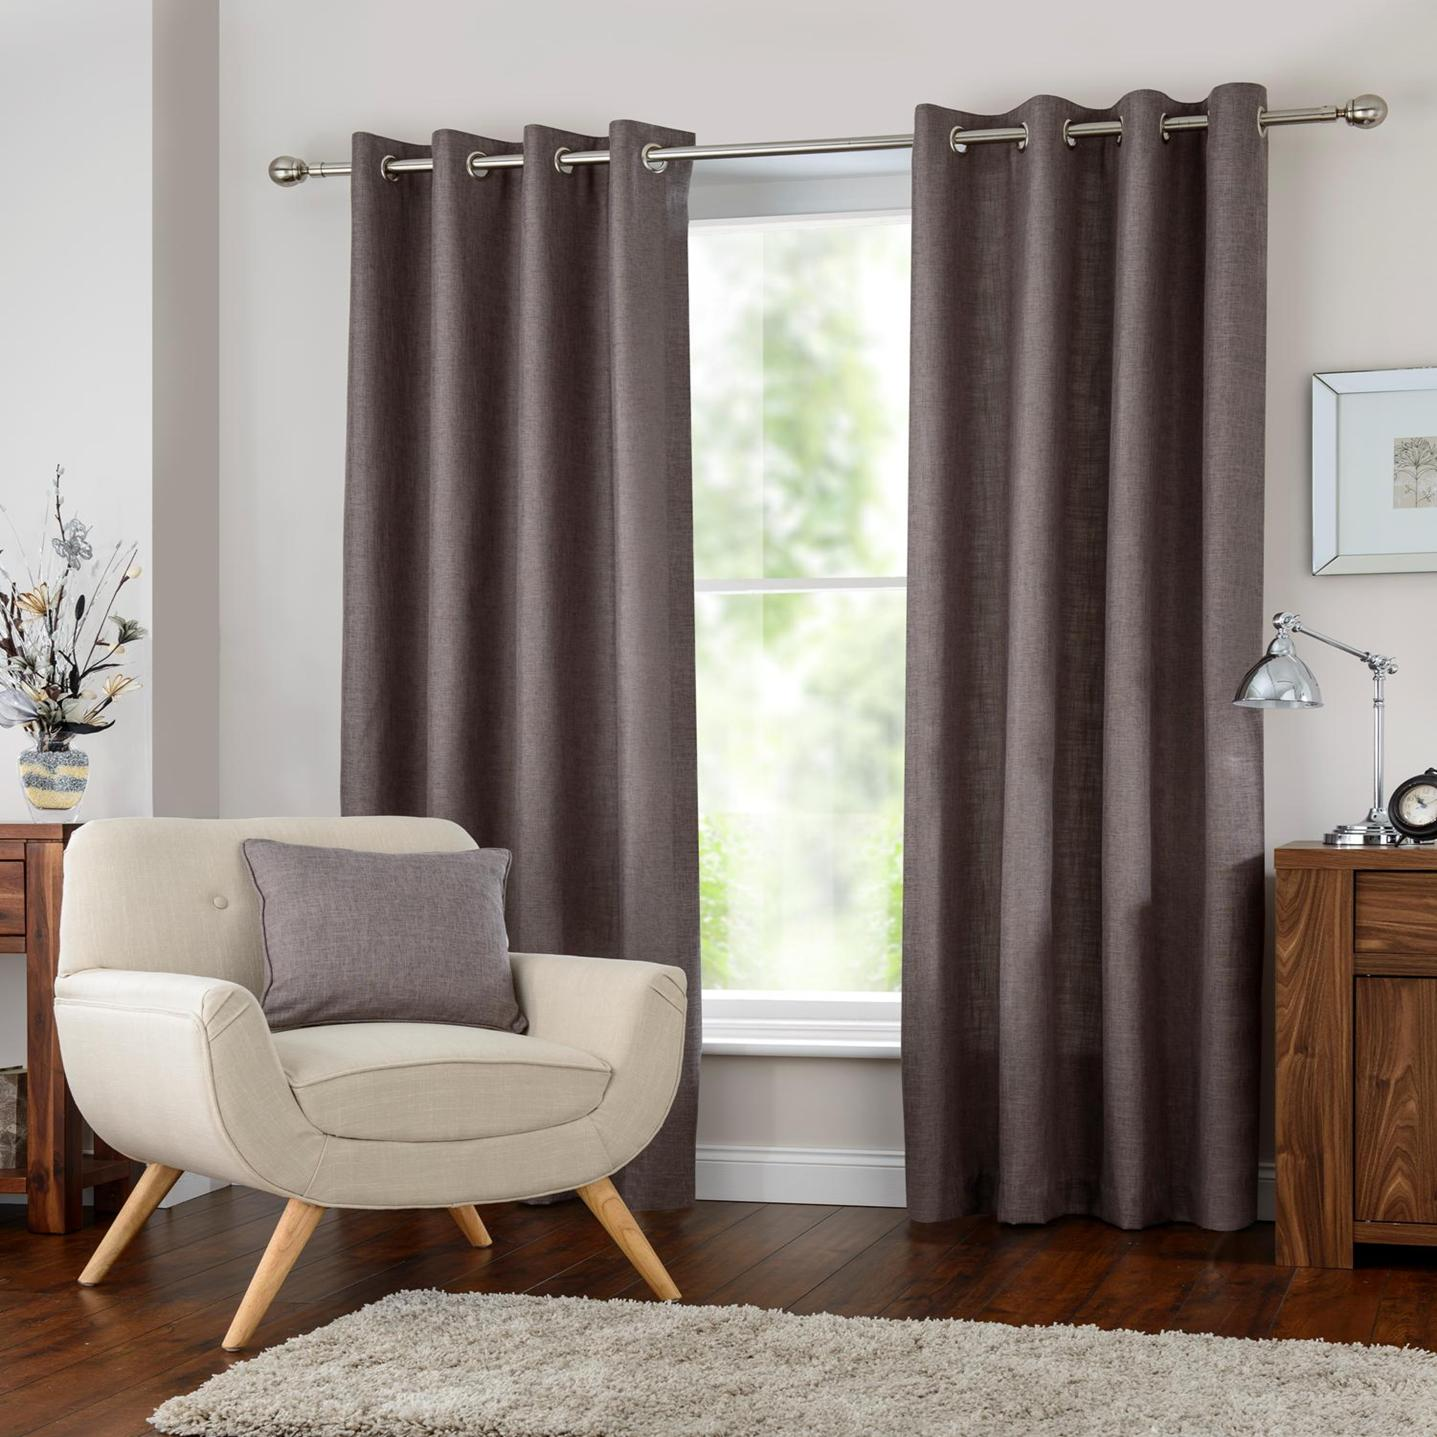 Halo Eyelet Curtains At Home